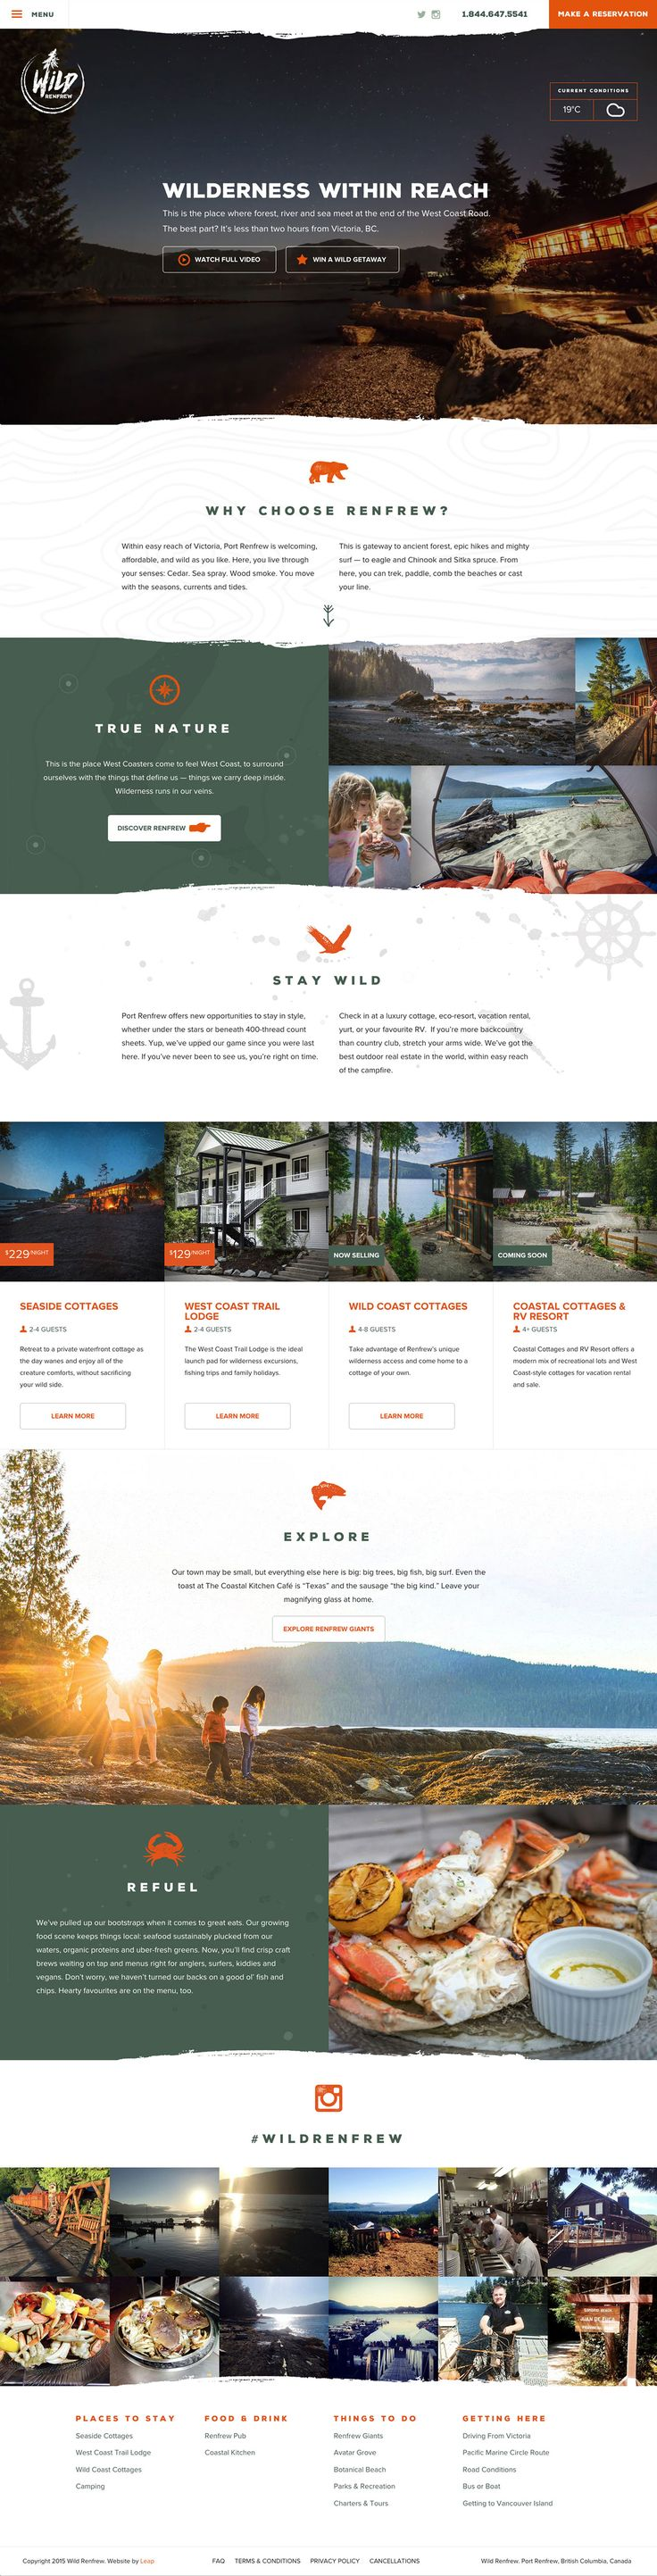 Wild Renfrew Website Design on Behance